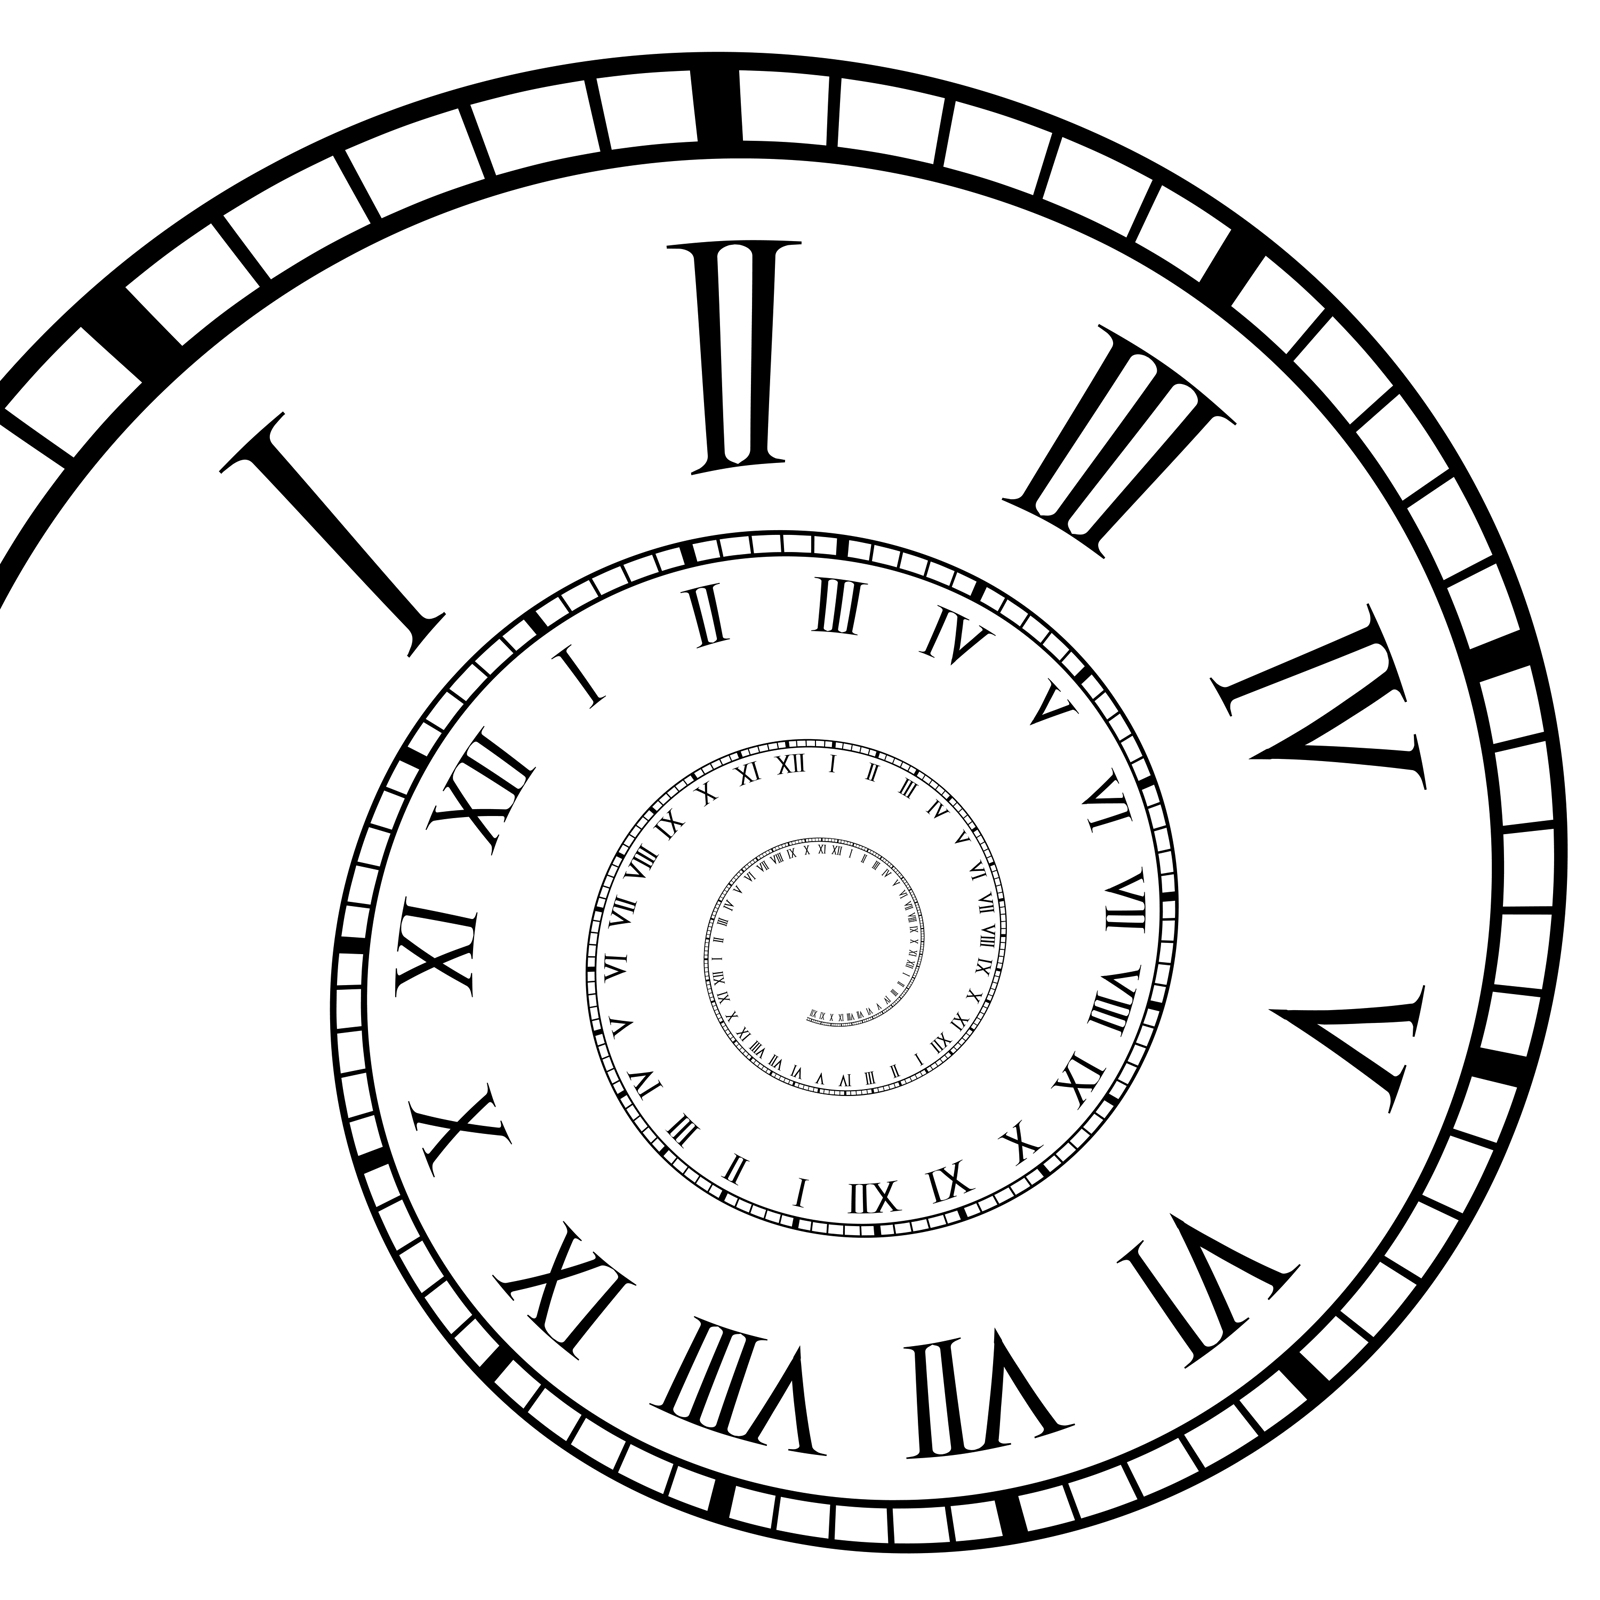 Pocket Watch furthermore 1md2hours02 furthermore Clock Craft further 210965563768433335 further Royalty Free Stock Photography Spiral Roman Numeral Clock Time Line Image27518007. on sundial design